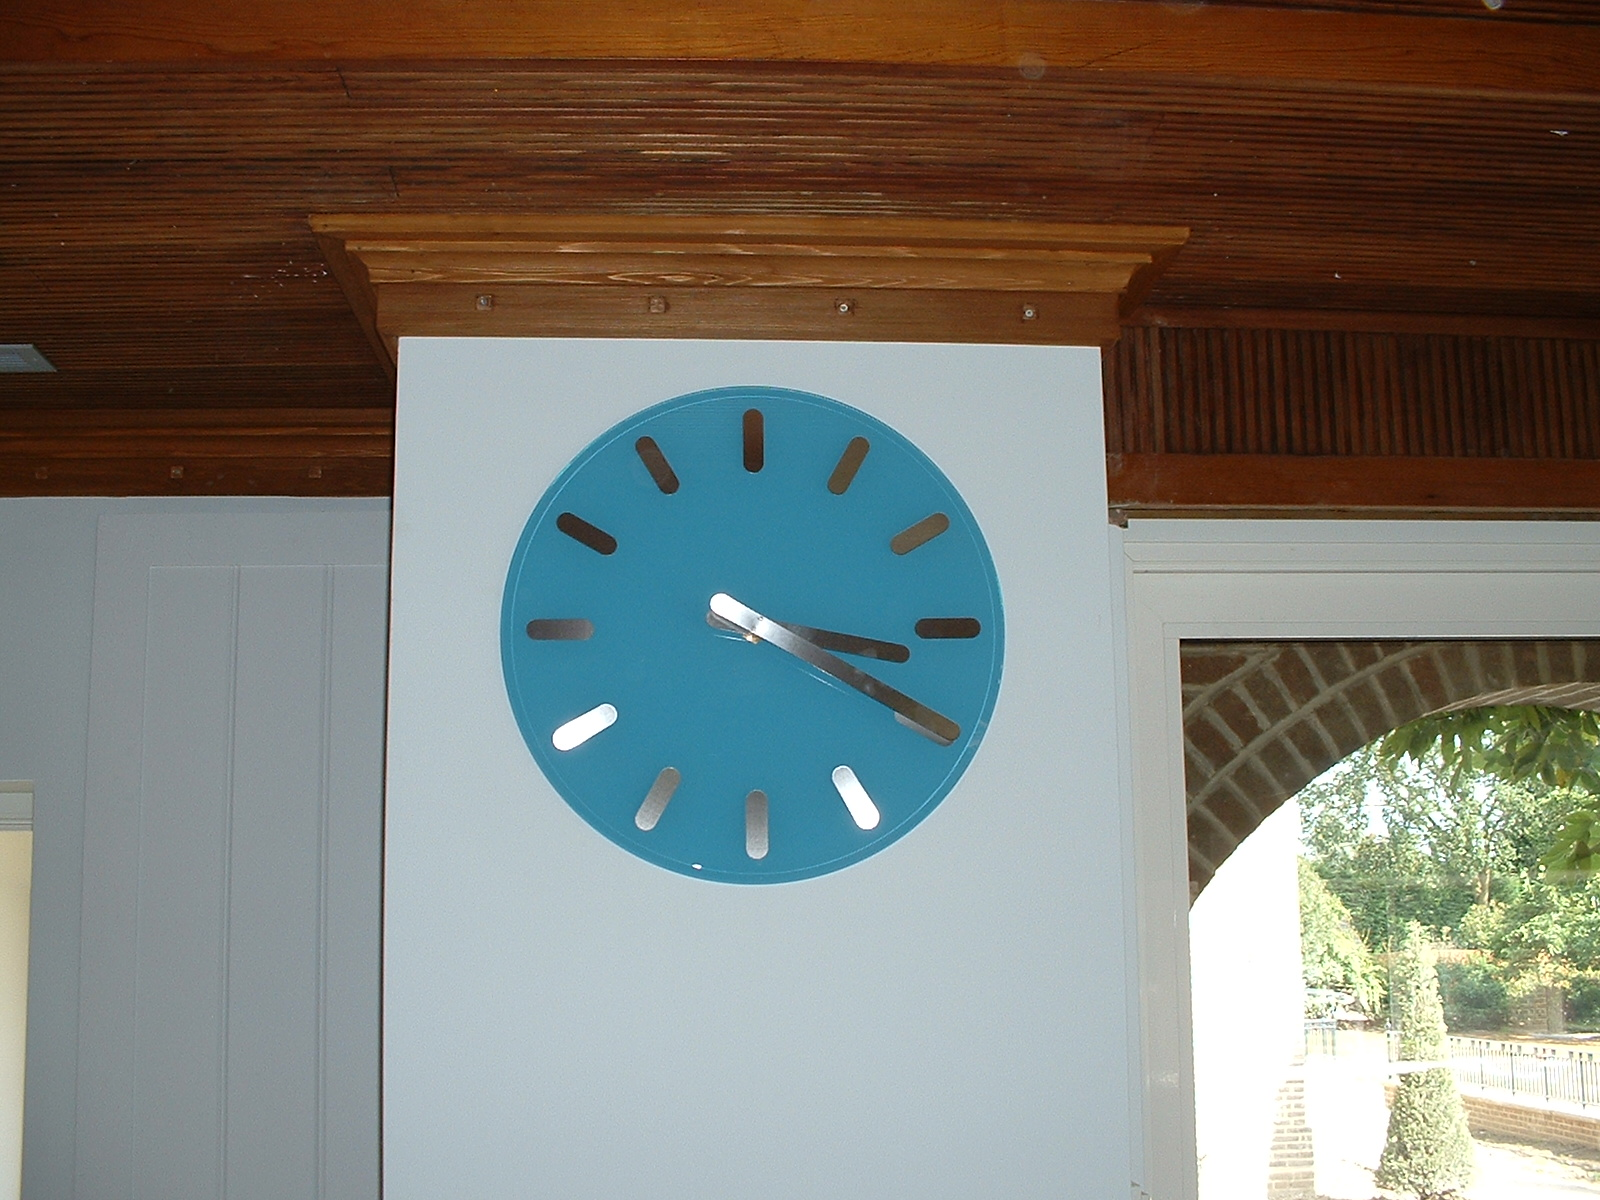 Blue clock with stainless chapters